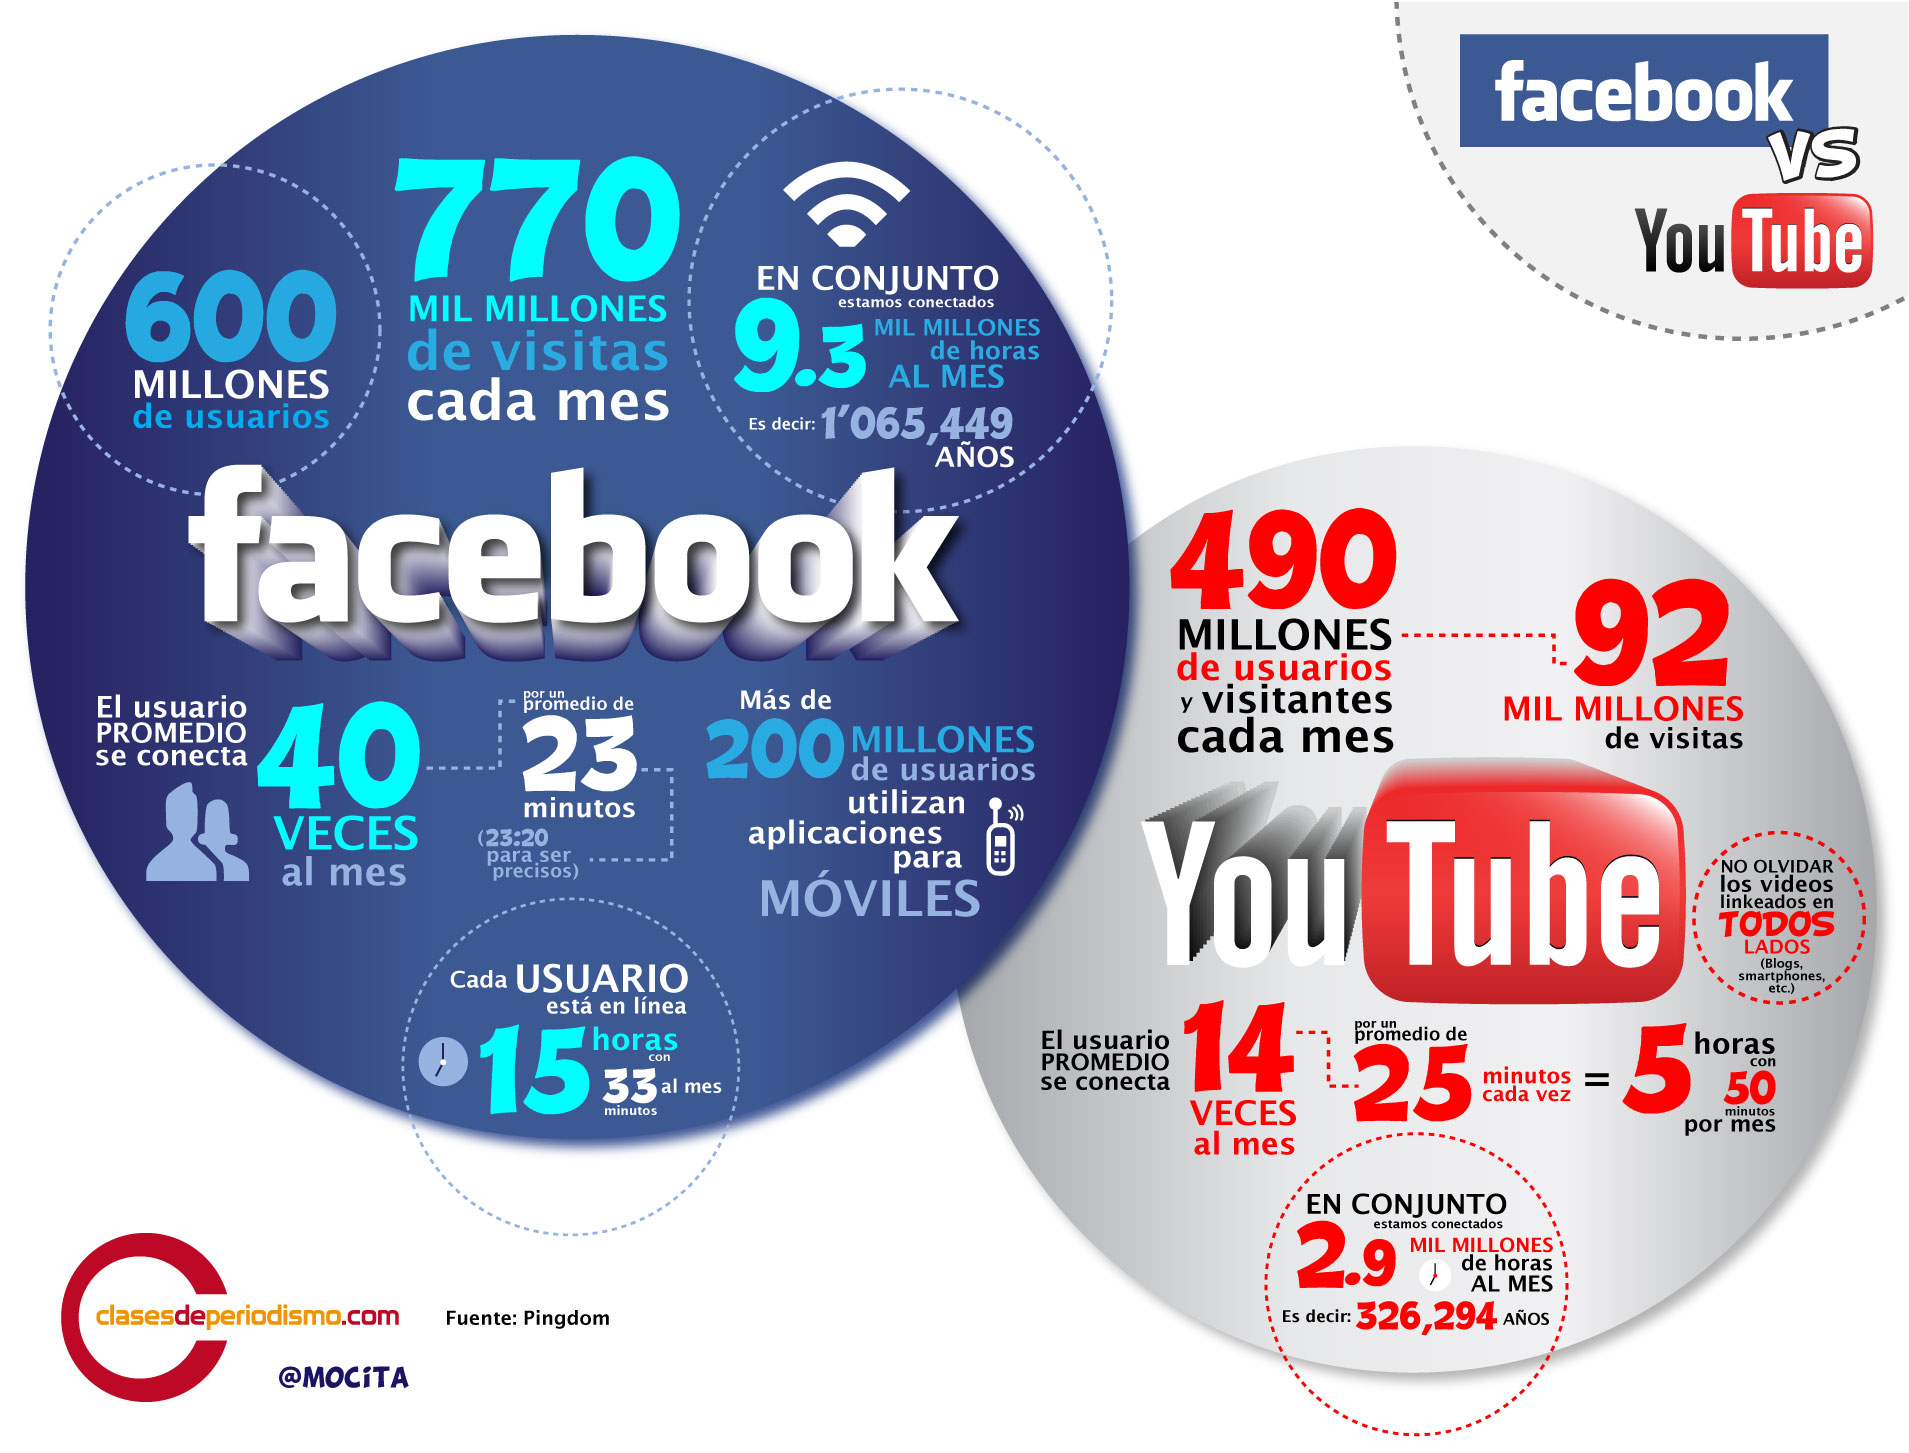 info_fb_vs_youtube